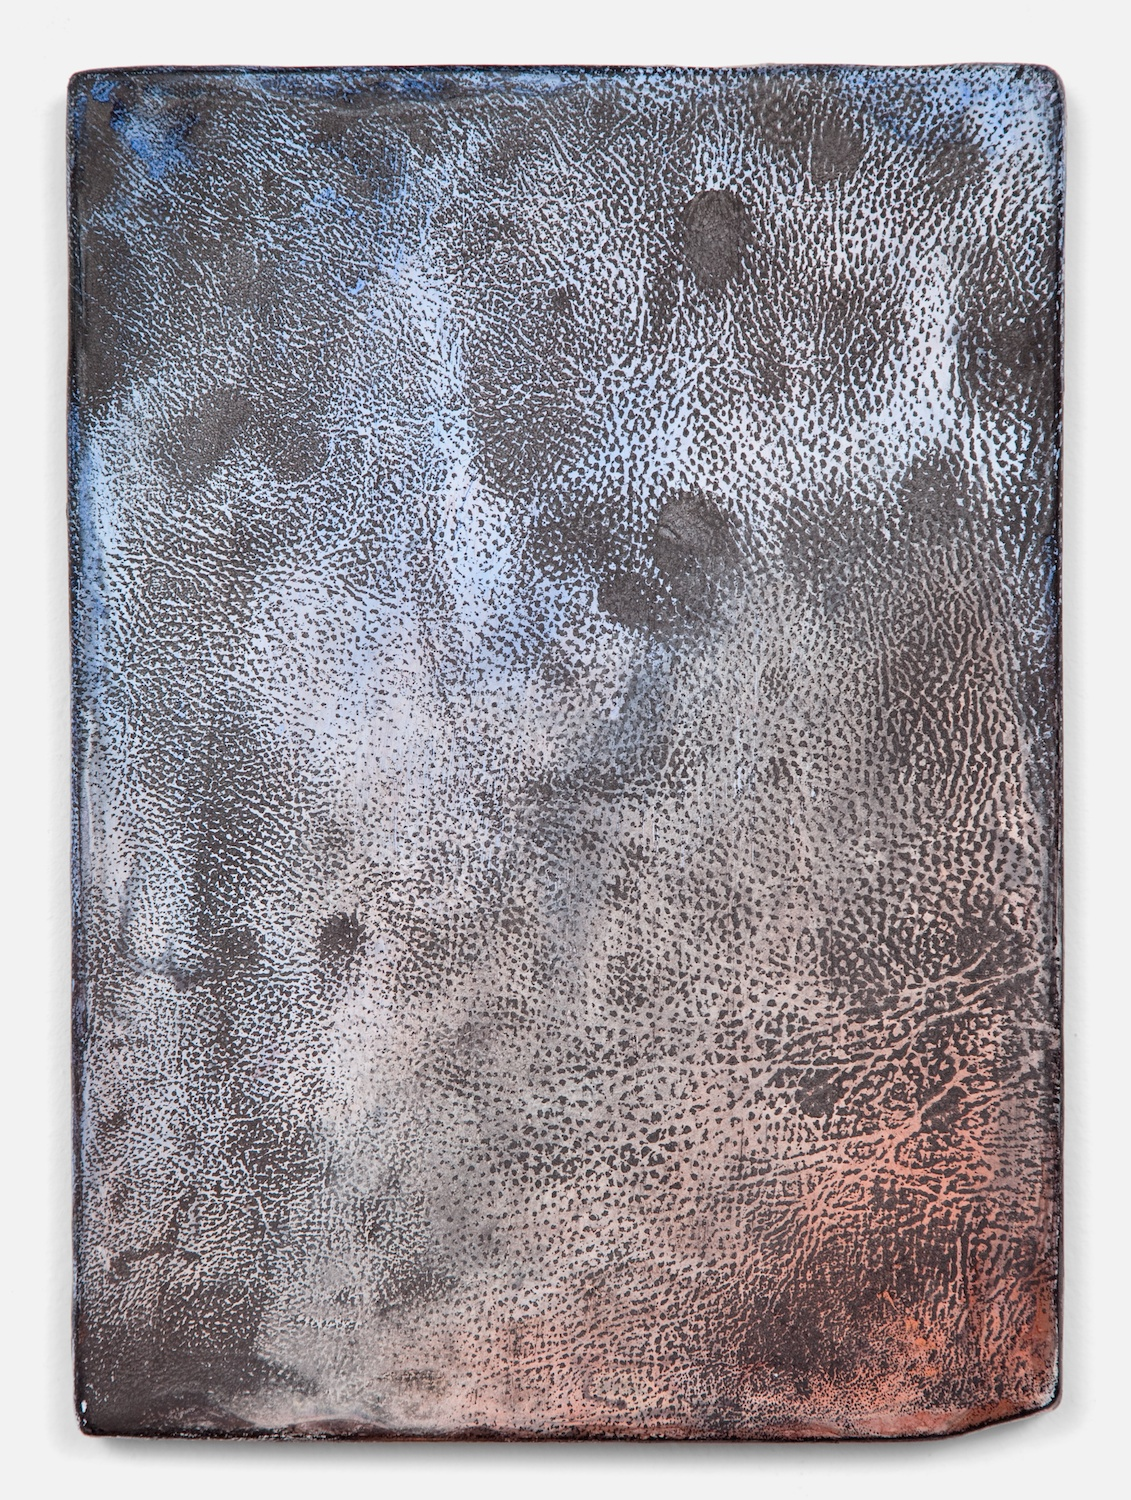 Jay Heikes  Mother Ludlam's  2011 Paper, aluminum, dry pigment, ink, and wood 14h x 10 ¼w in JH033